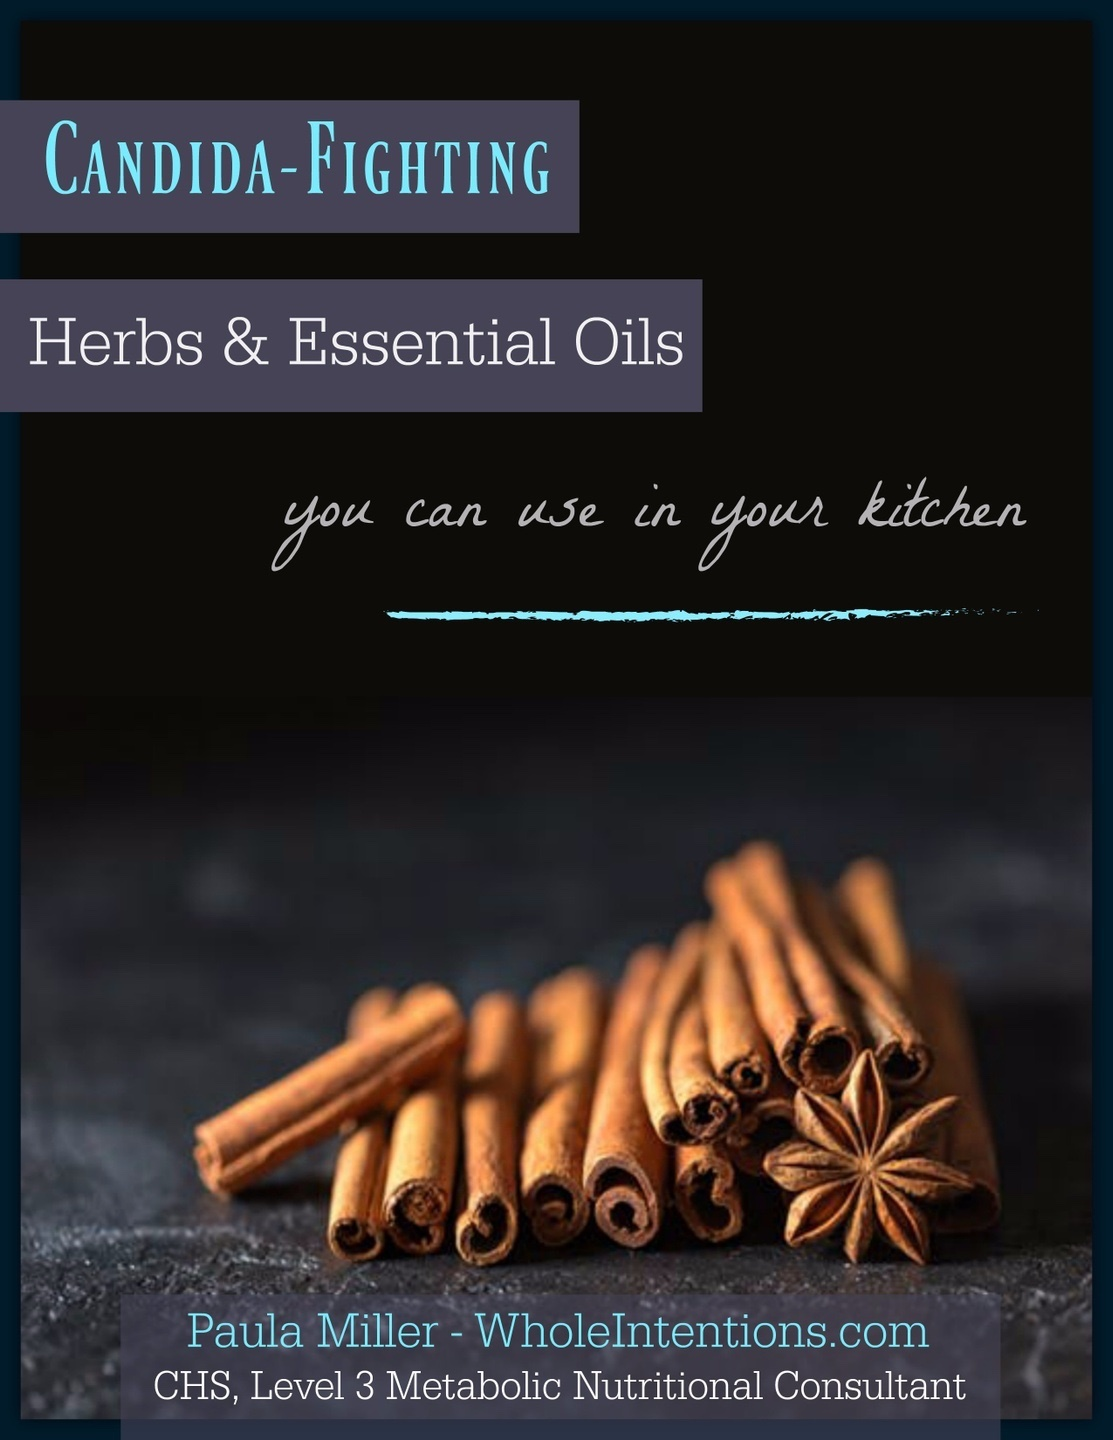 cover of candida herb book